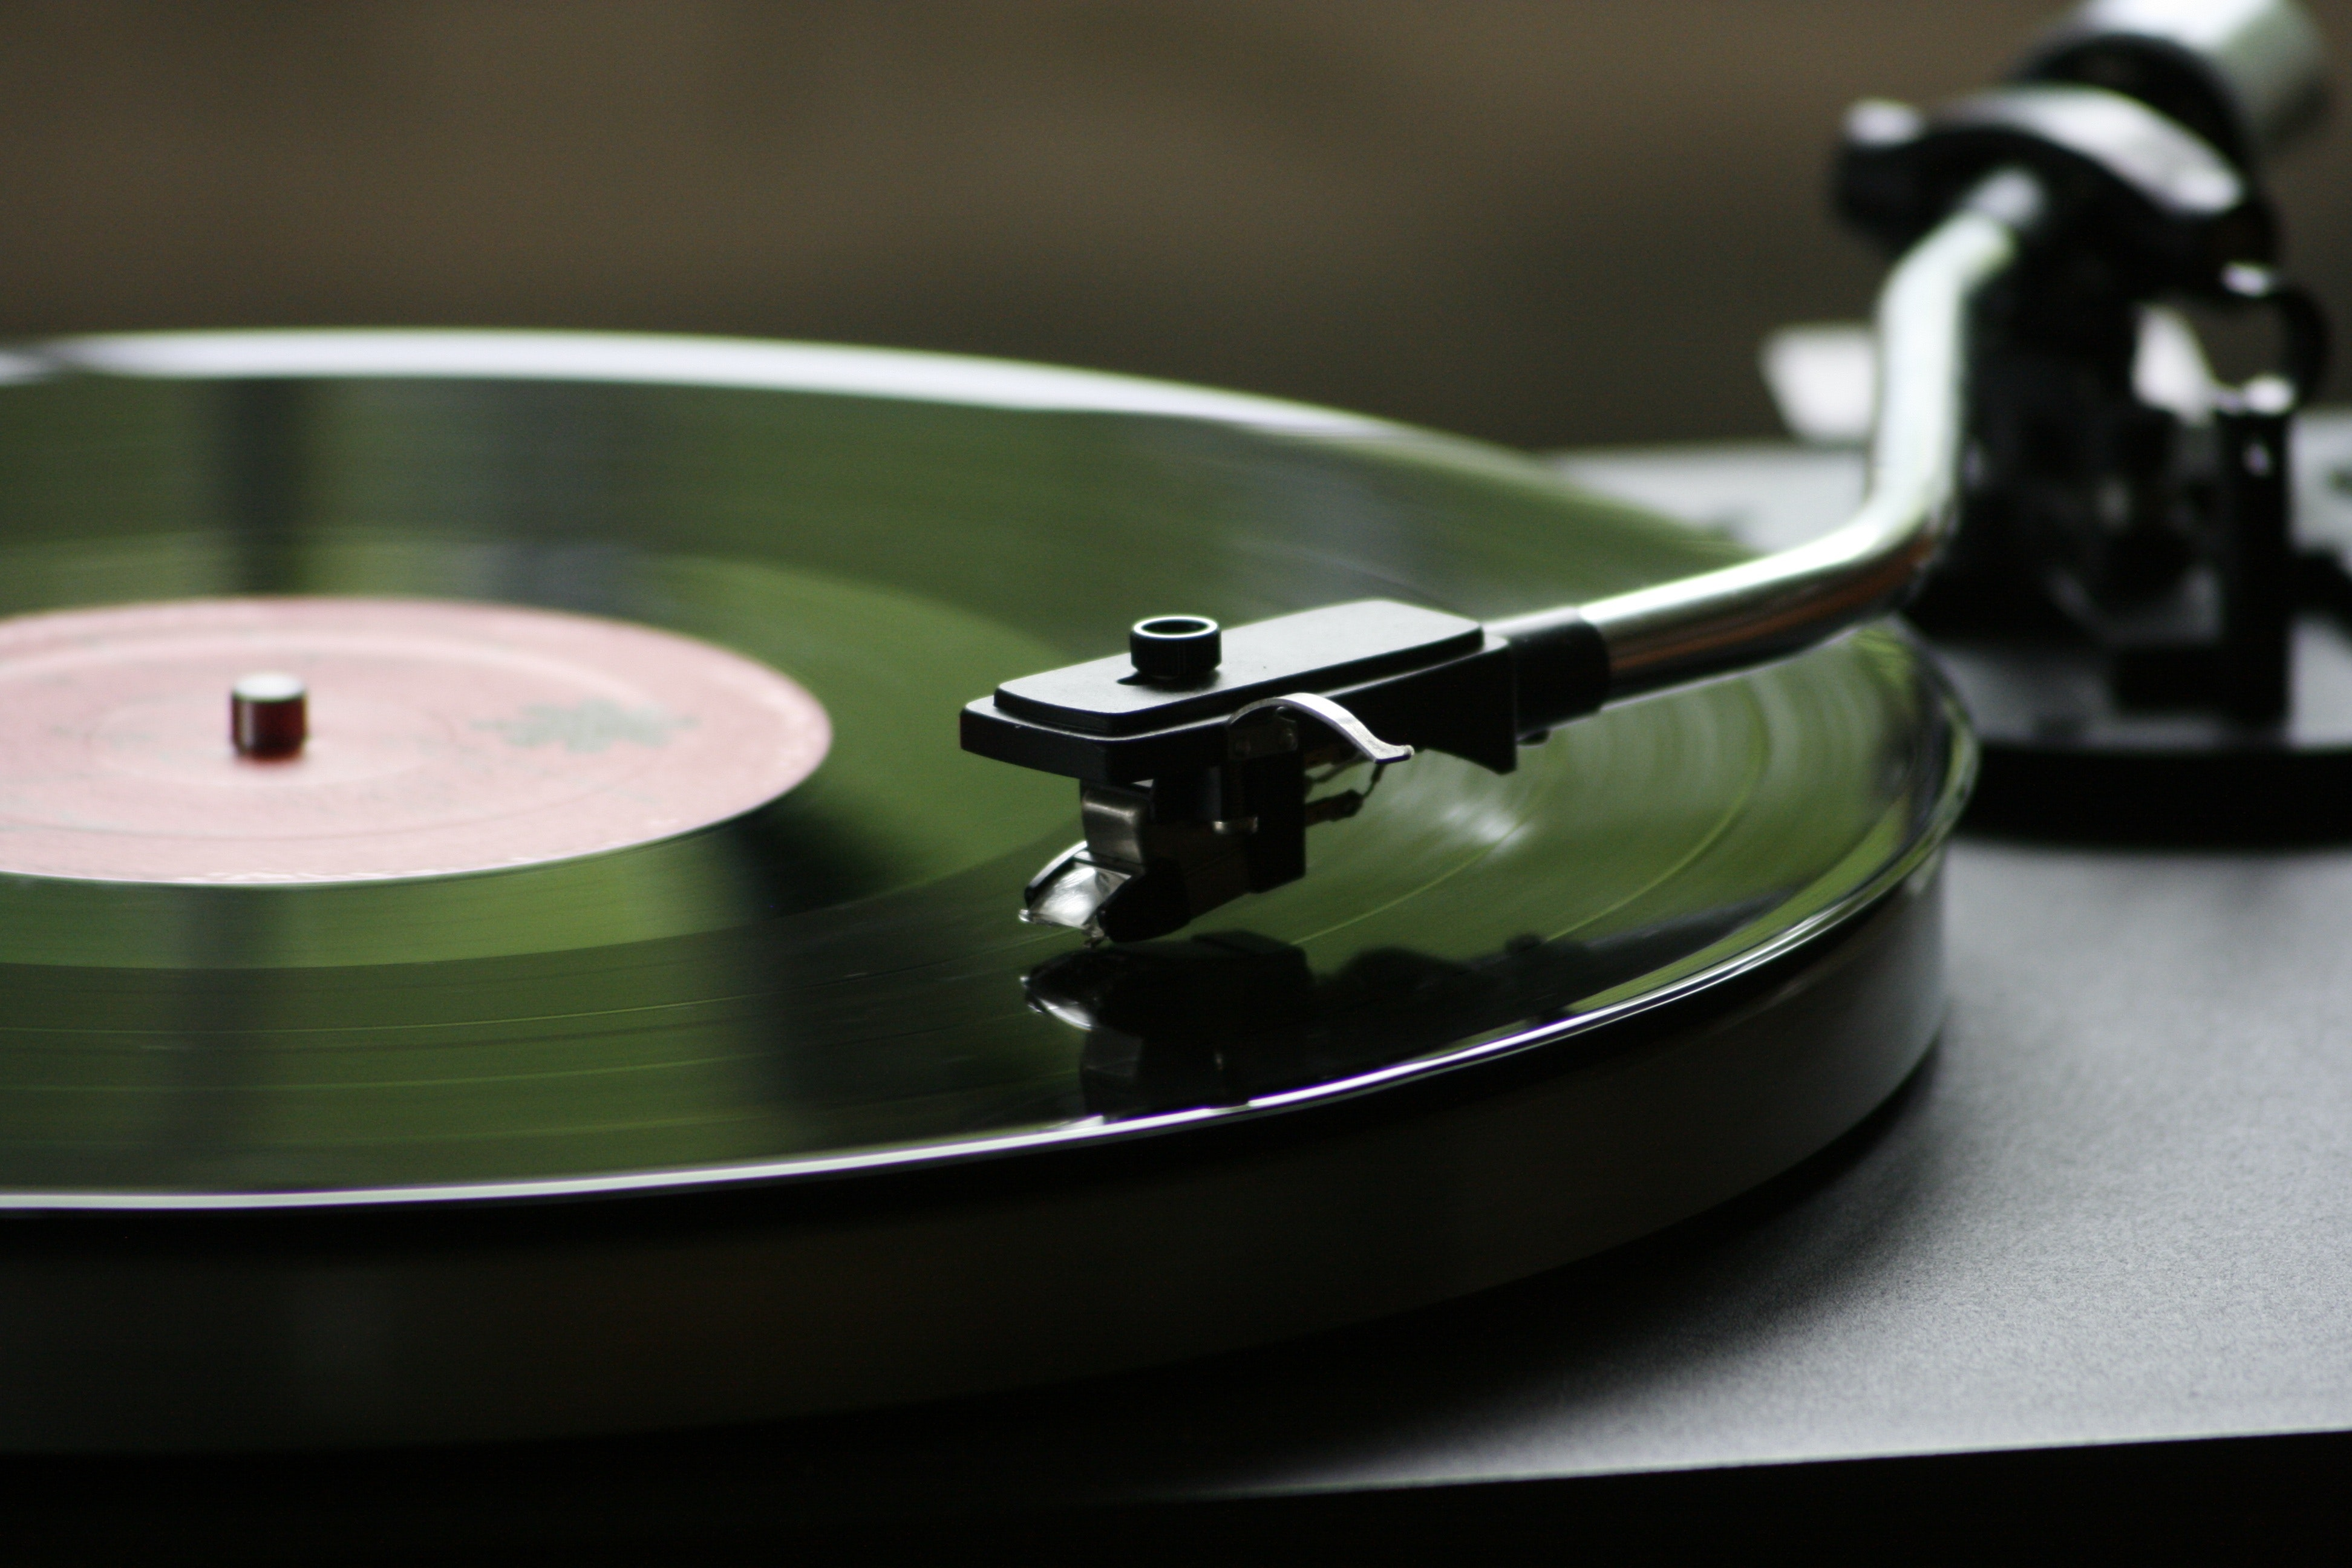 Vinyl Record Playing, Audio, Disc, Disk, Music, HQ Photo